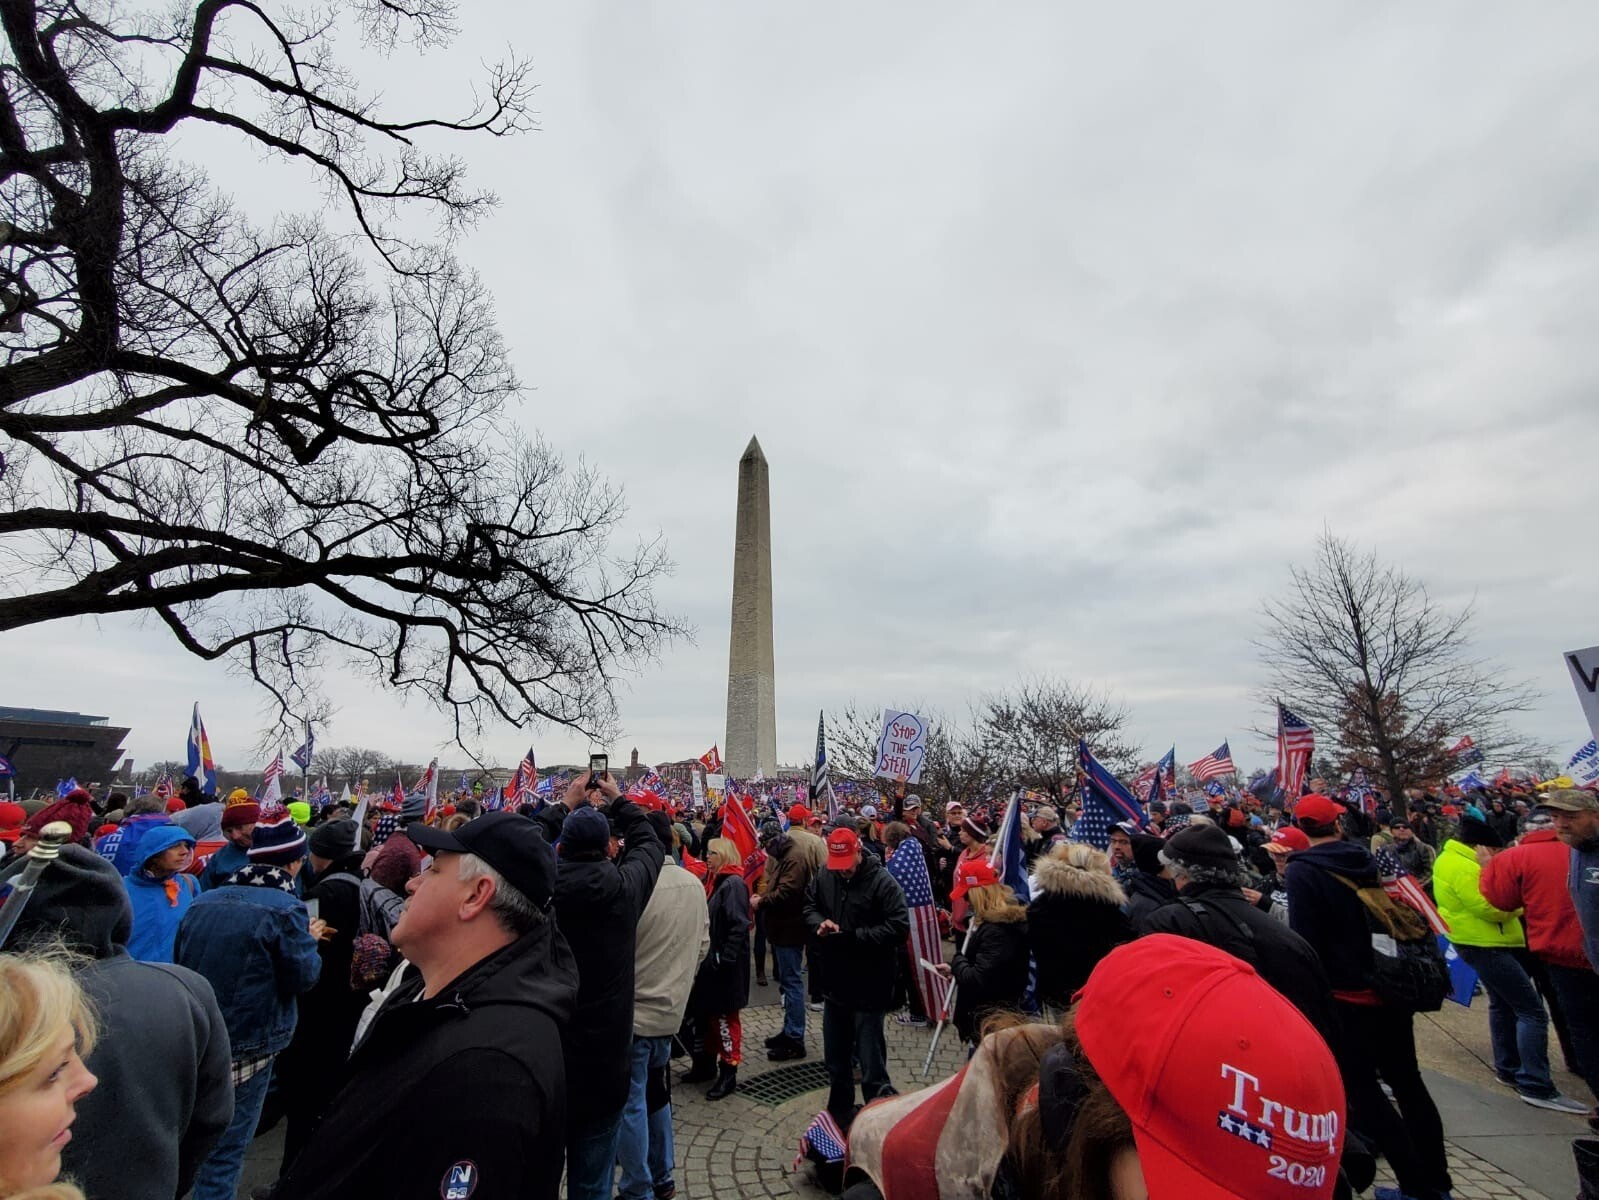 Supporters of President Trump from South Florida and Treasure Coast traveled to the nation's capital on buses to partake in demonstrations Jan. 6, 2021, ahead of certification of Joe Biden's presidential victory in the Electoral College.